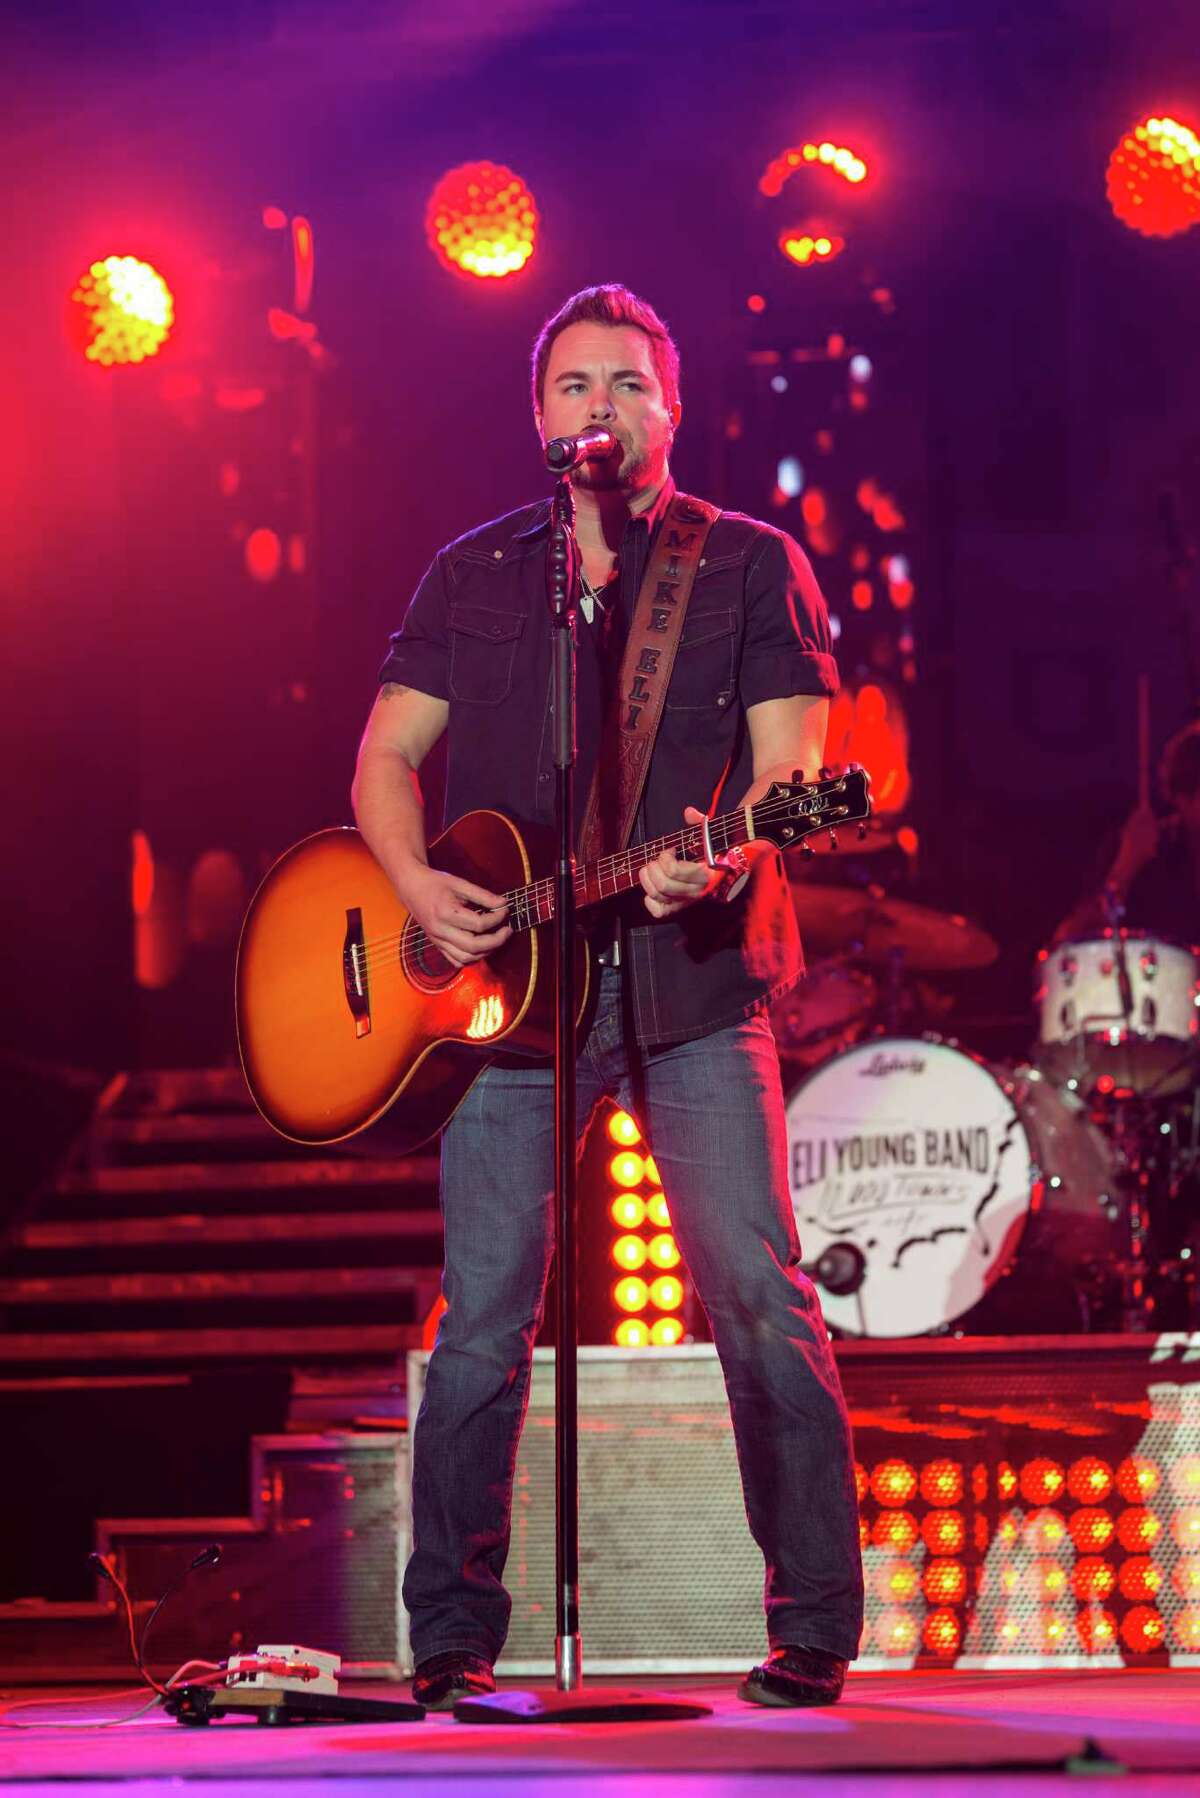 Eli Young Band vocalist and guitarist Mike Eli sings during the Eli Young Band House Party at Minute Maid Park, Saturday, November 15th, 2014